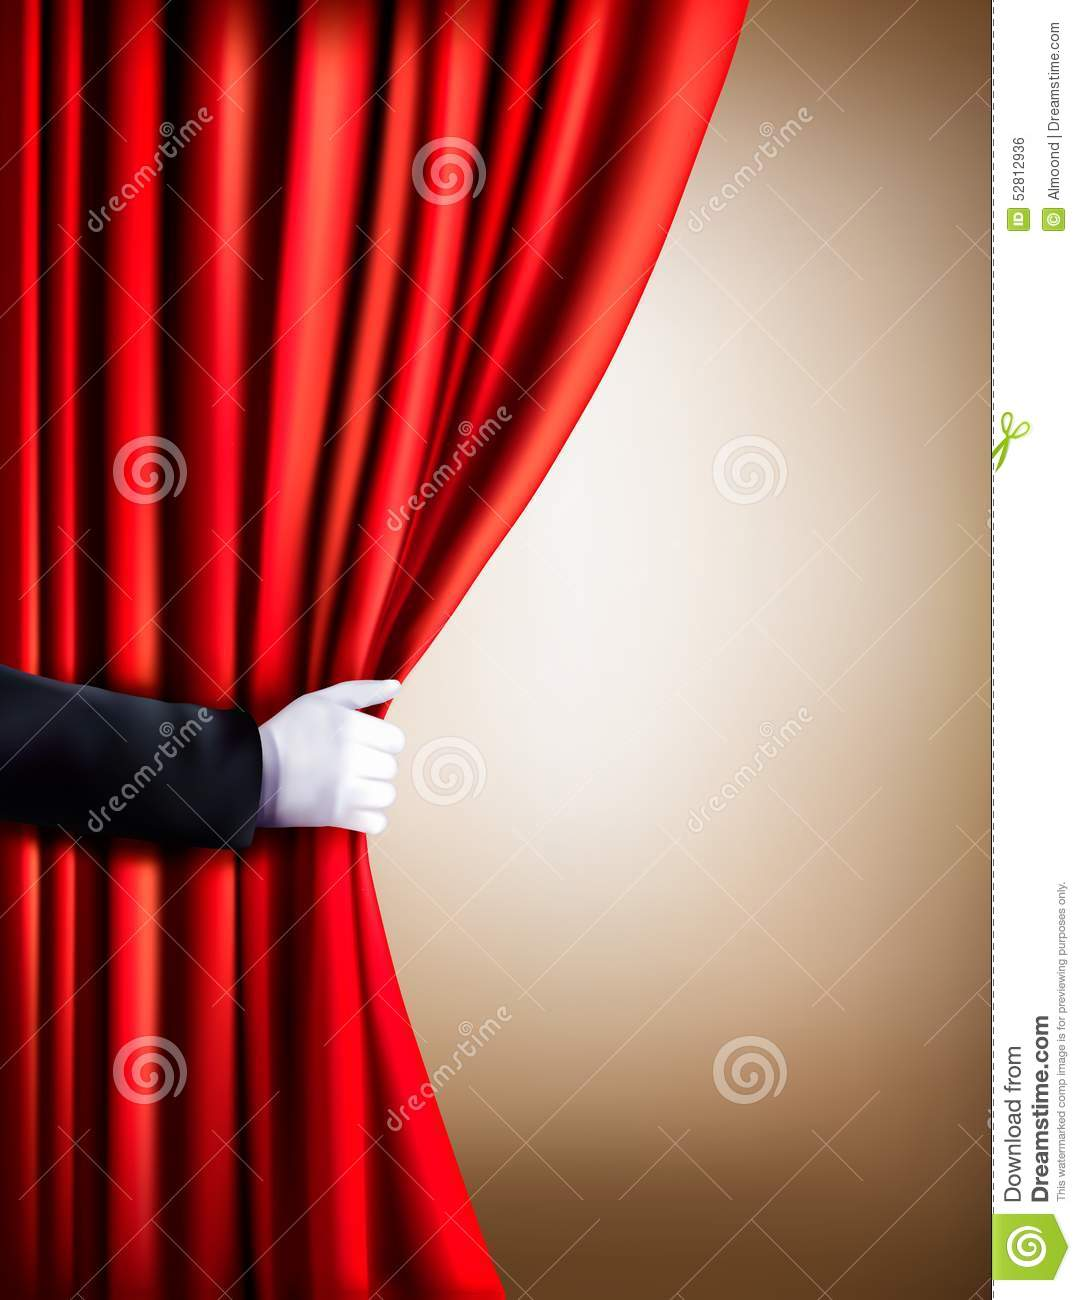 Hand In A White Glove Pulling Curtain Away Theater Stock